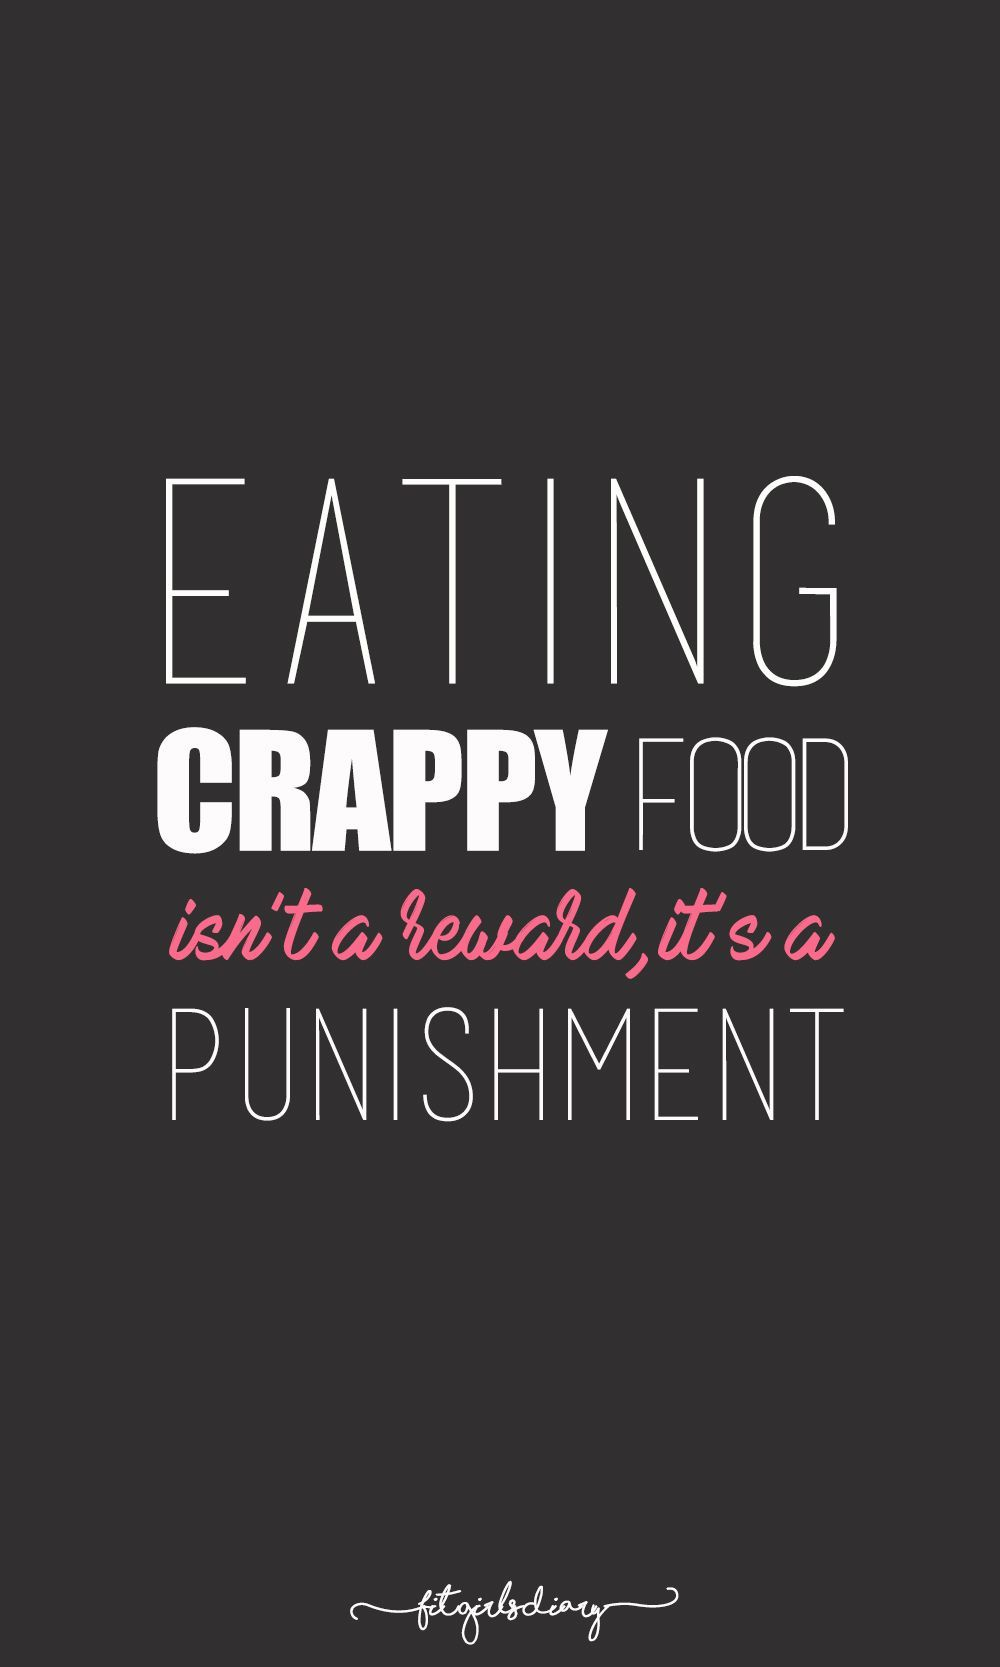 #motivational #inspiring #motivate #fitness #posters #healthy #quotes #girls #diary #free #you #eat...